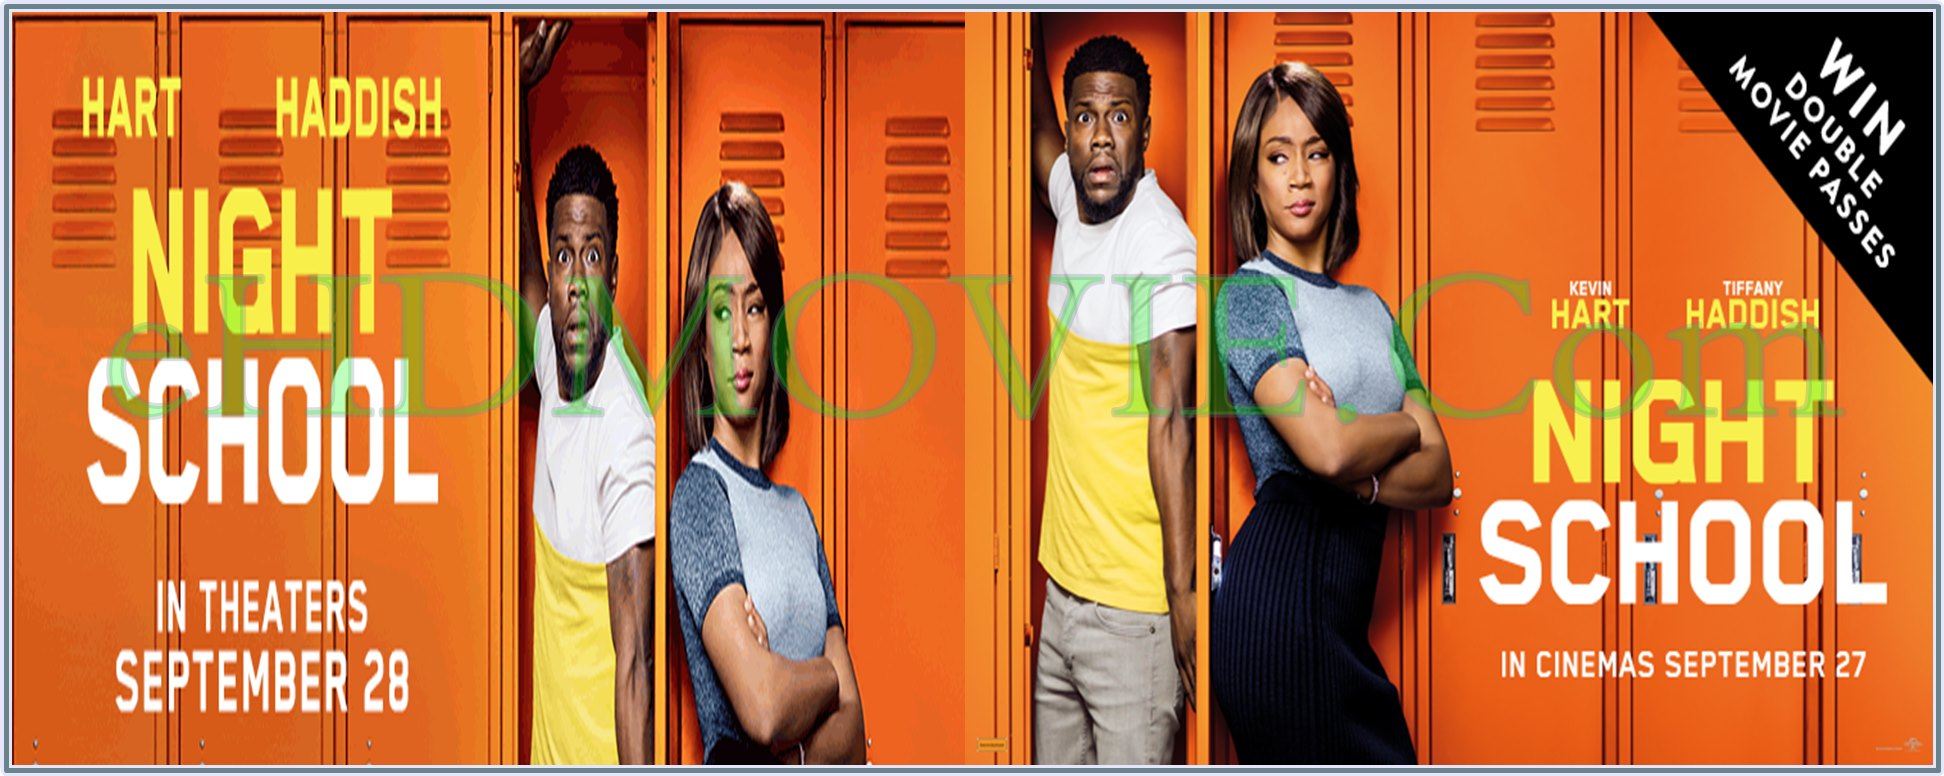 Night School 2018 Full Movie English 720p - 480p ORG BRRip 450MB - 650MB - 950MB ESubs Free Download